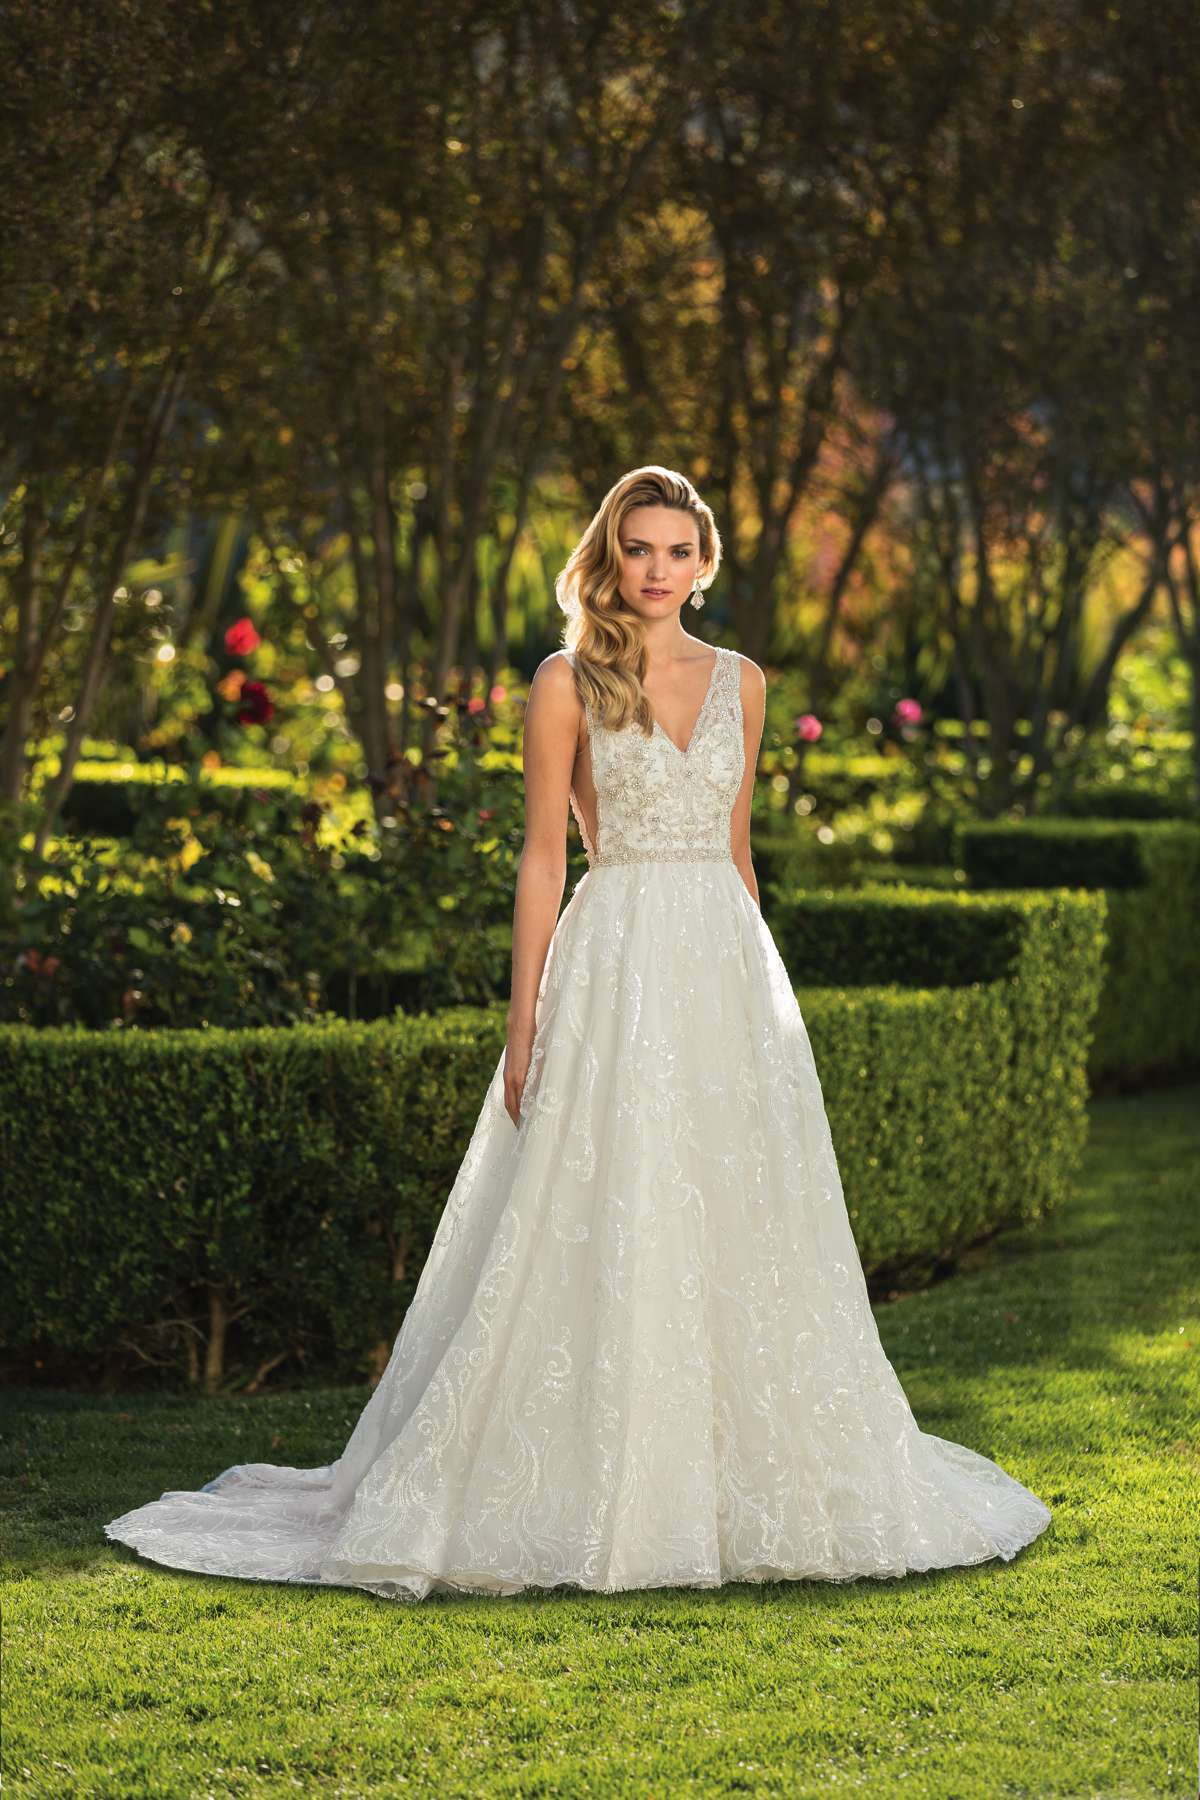 Lucie By Casablanca Bridal Find Your Dream Dress